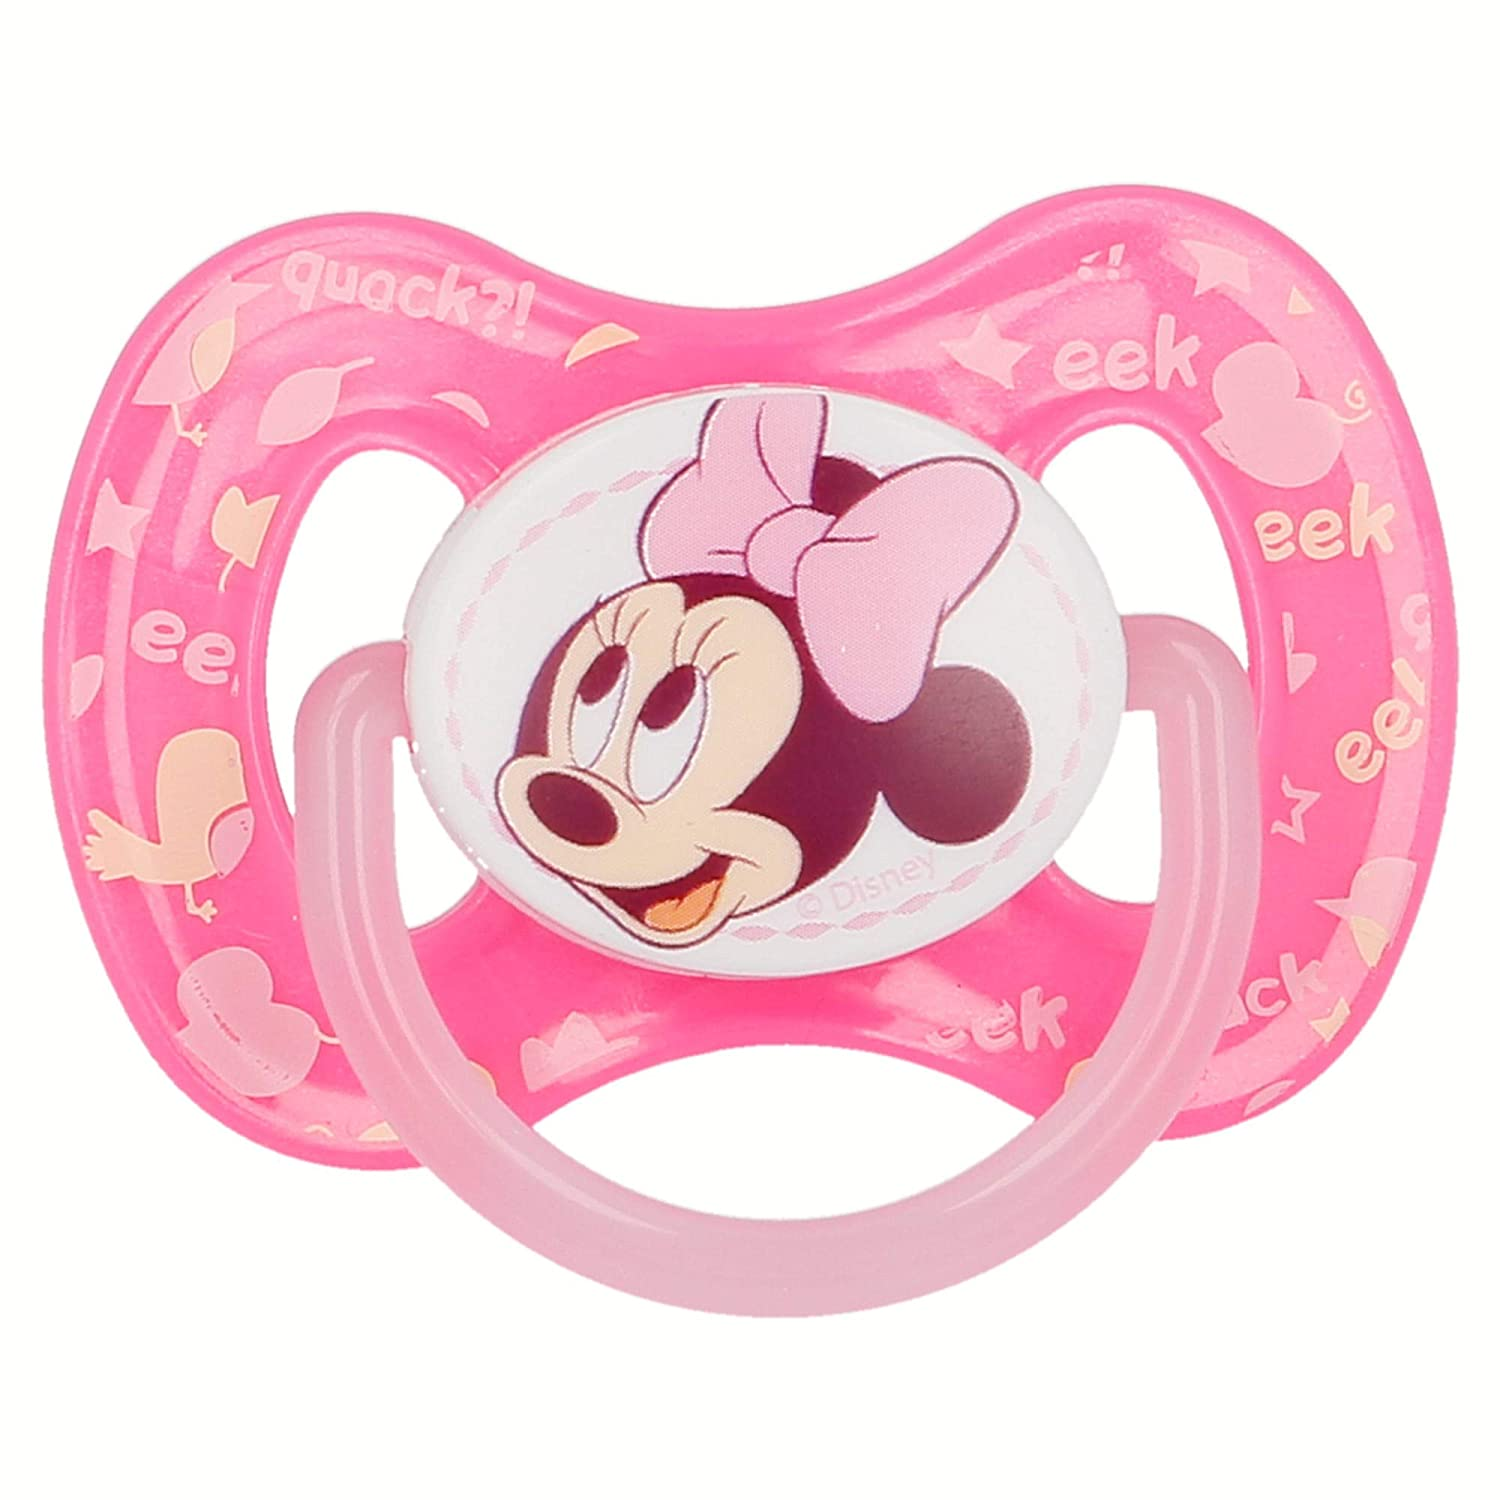 CHUPETE REVERSIBLE TETINA FISIOLOGICA SILICONA +6 M MINNIE MOUSE - DISNEY - BABY PAINT POT